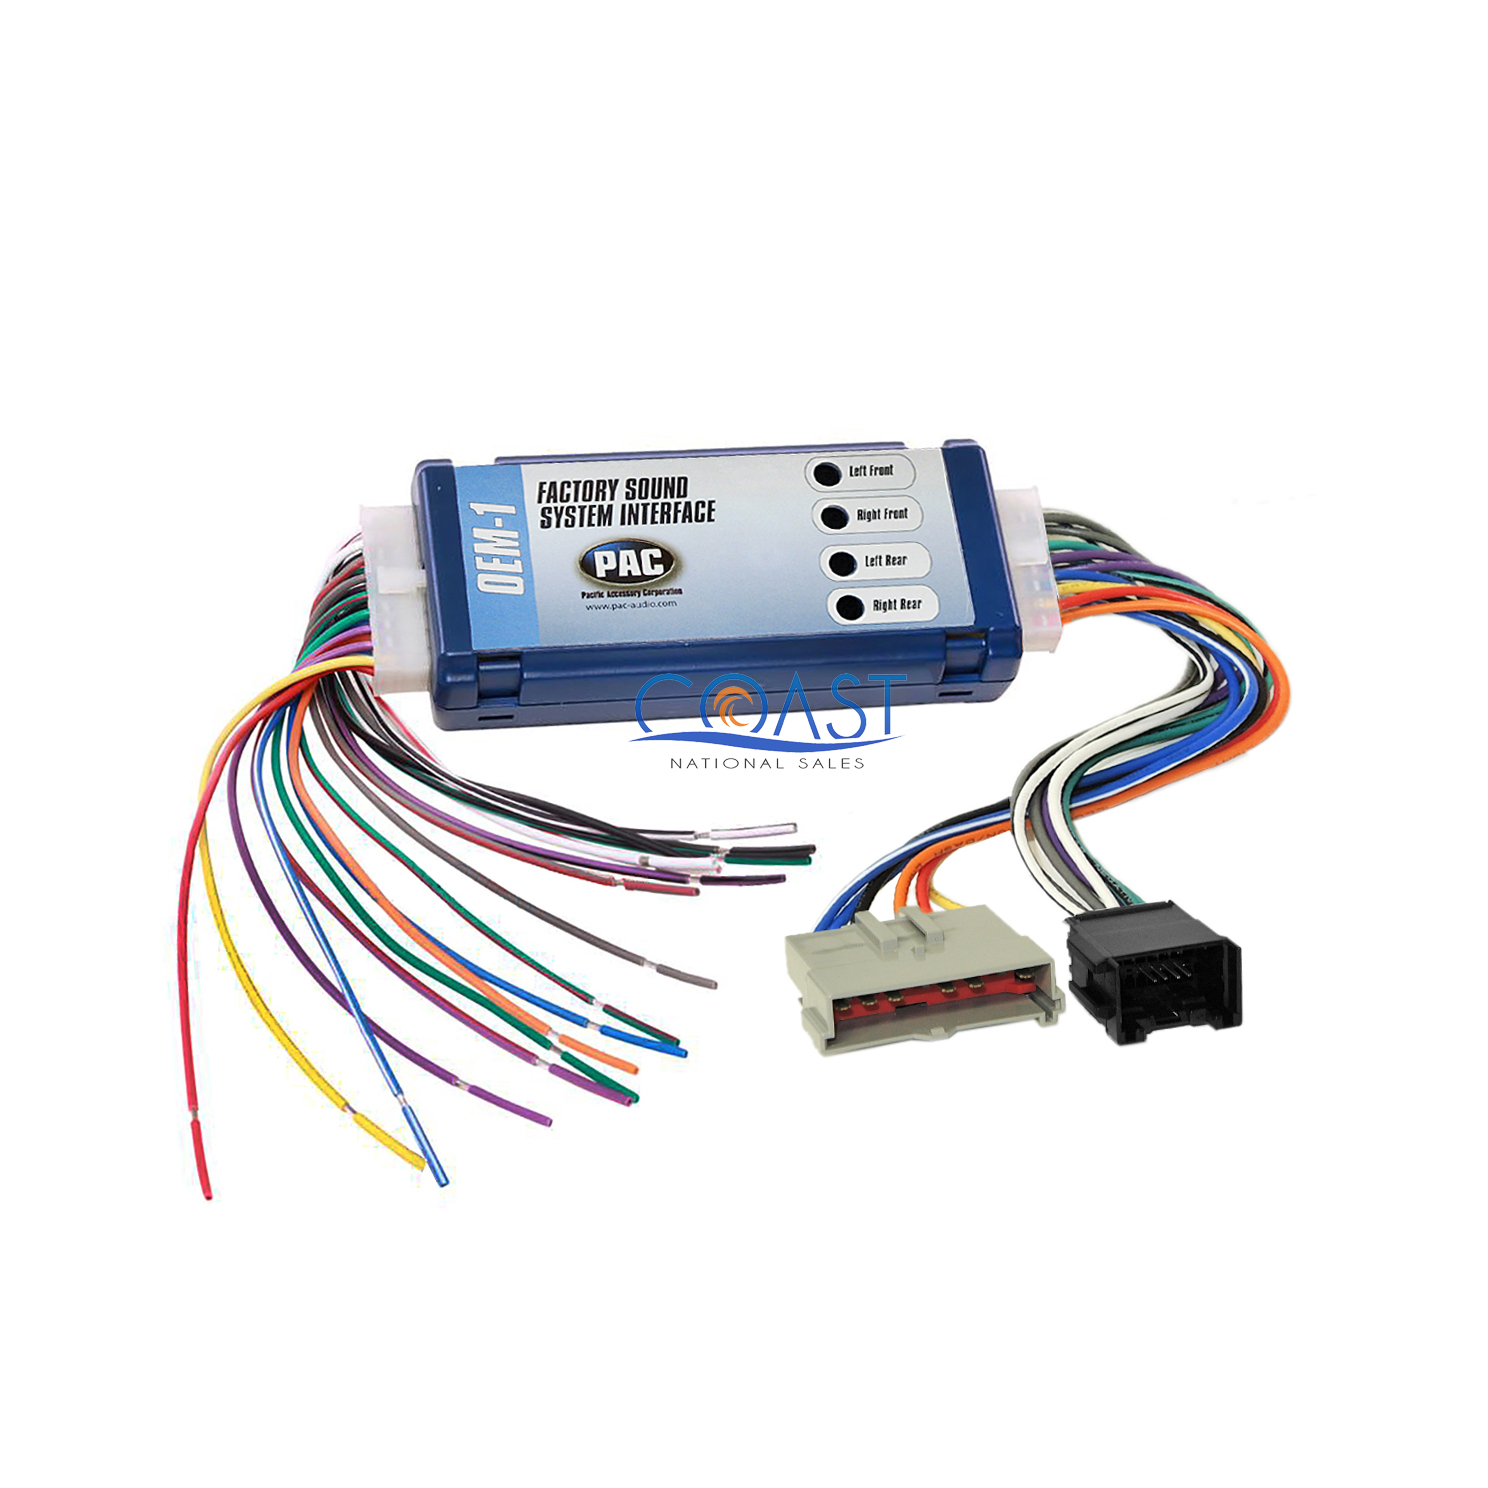 Details about Car Radio Replacement Sound System Interface Kit for 95-up  Ford Lincoln Mercury